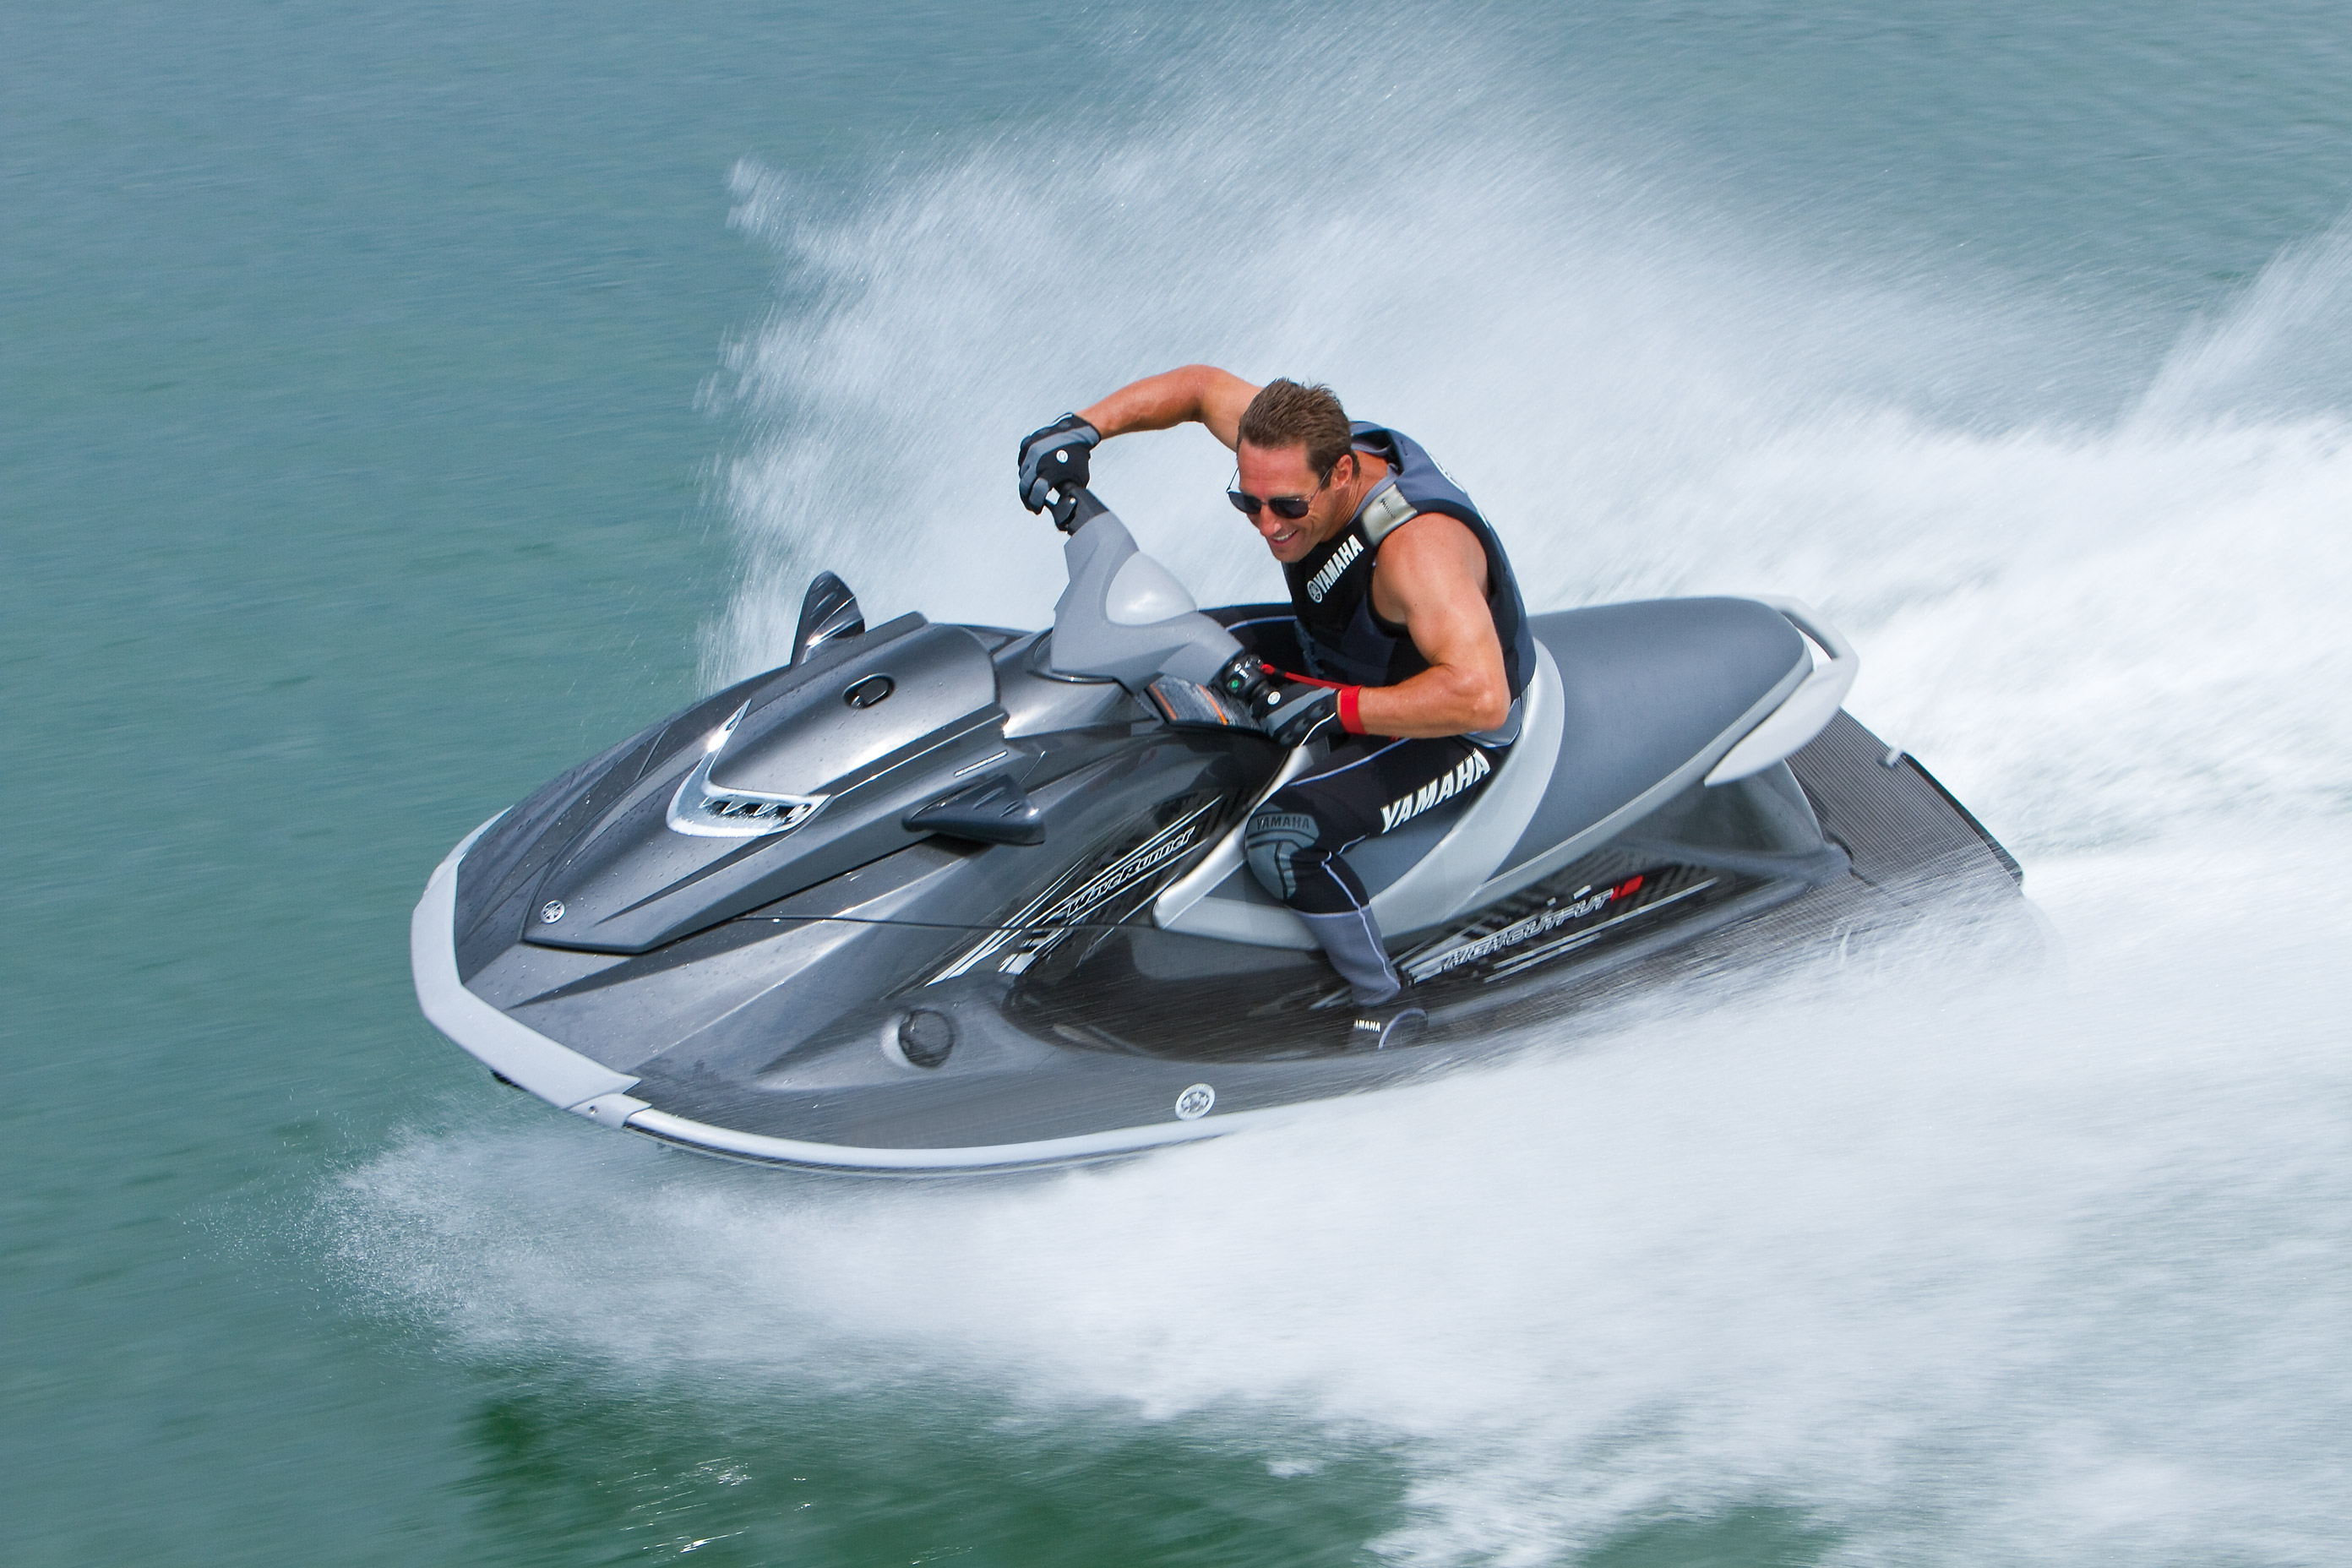 Yamaha Vxr Waverunner Packs 1 812cc Engine Lightweight Body